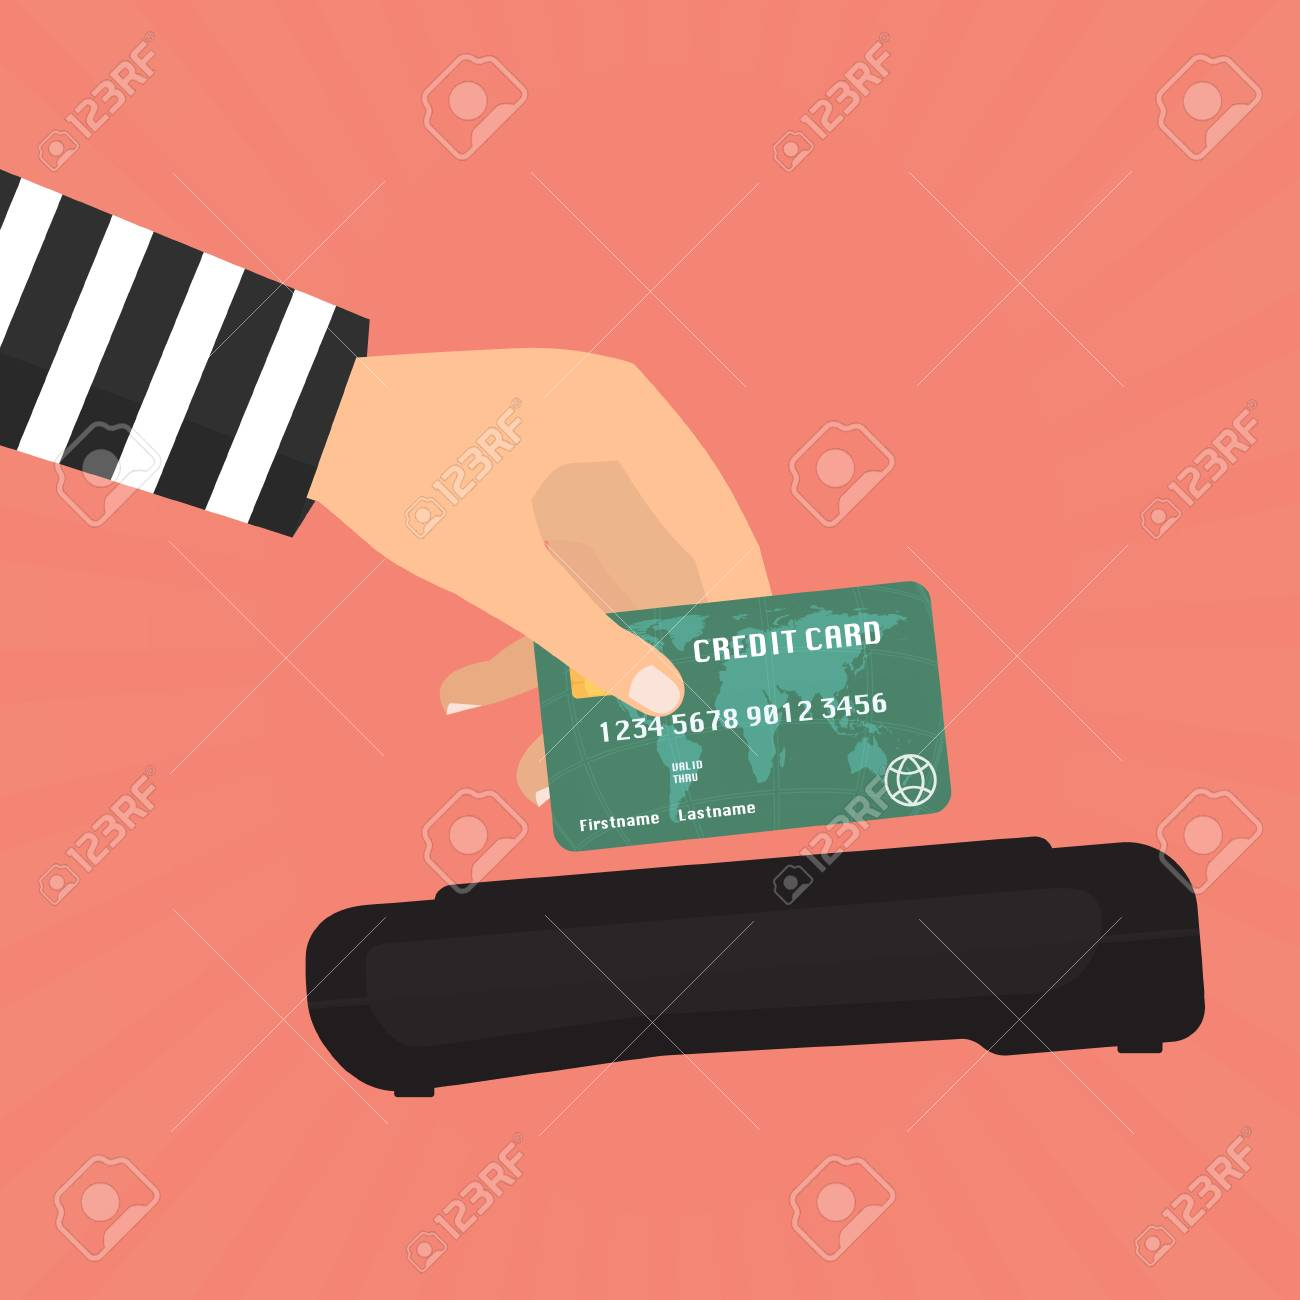 Hacker Theft Hand Holding A Credit Card Fraud For Paying With ...